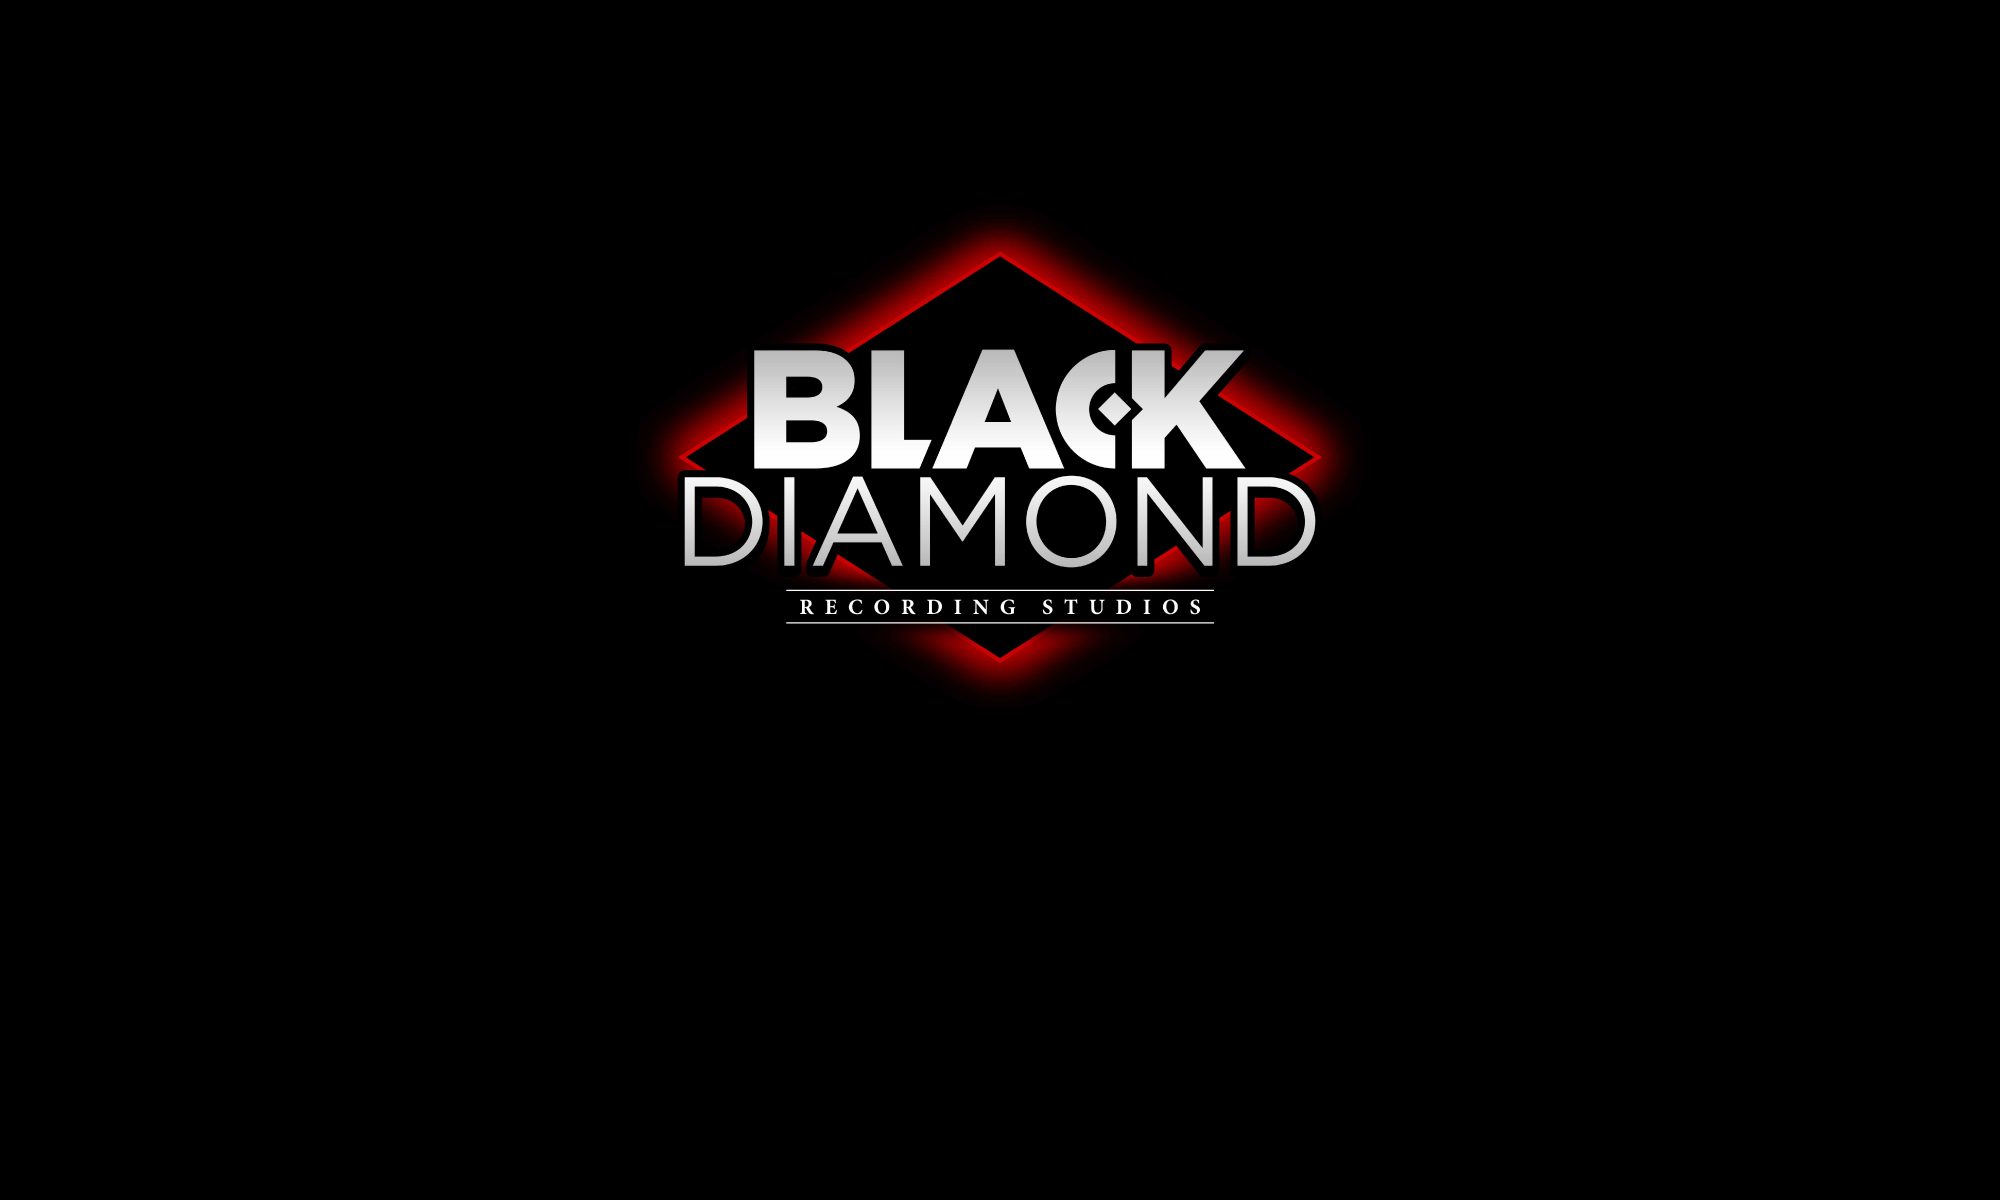 Black Diamond Recording Studios